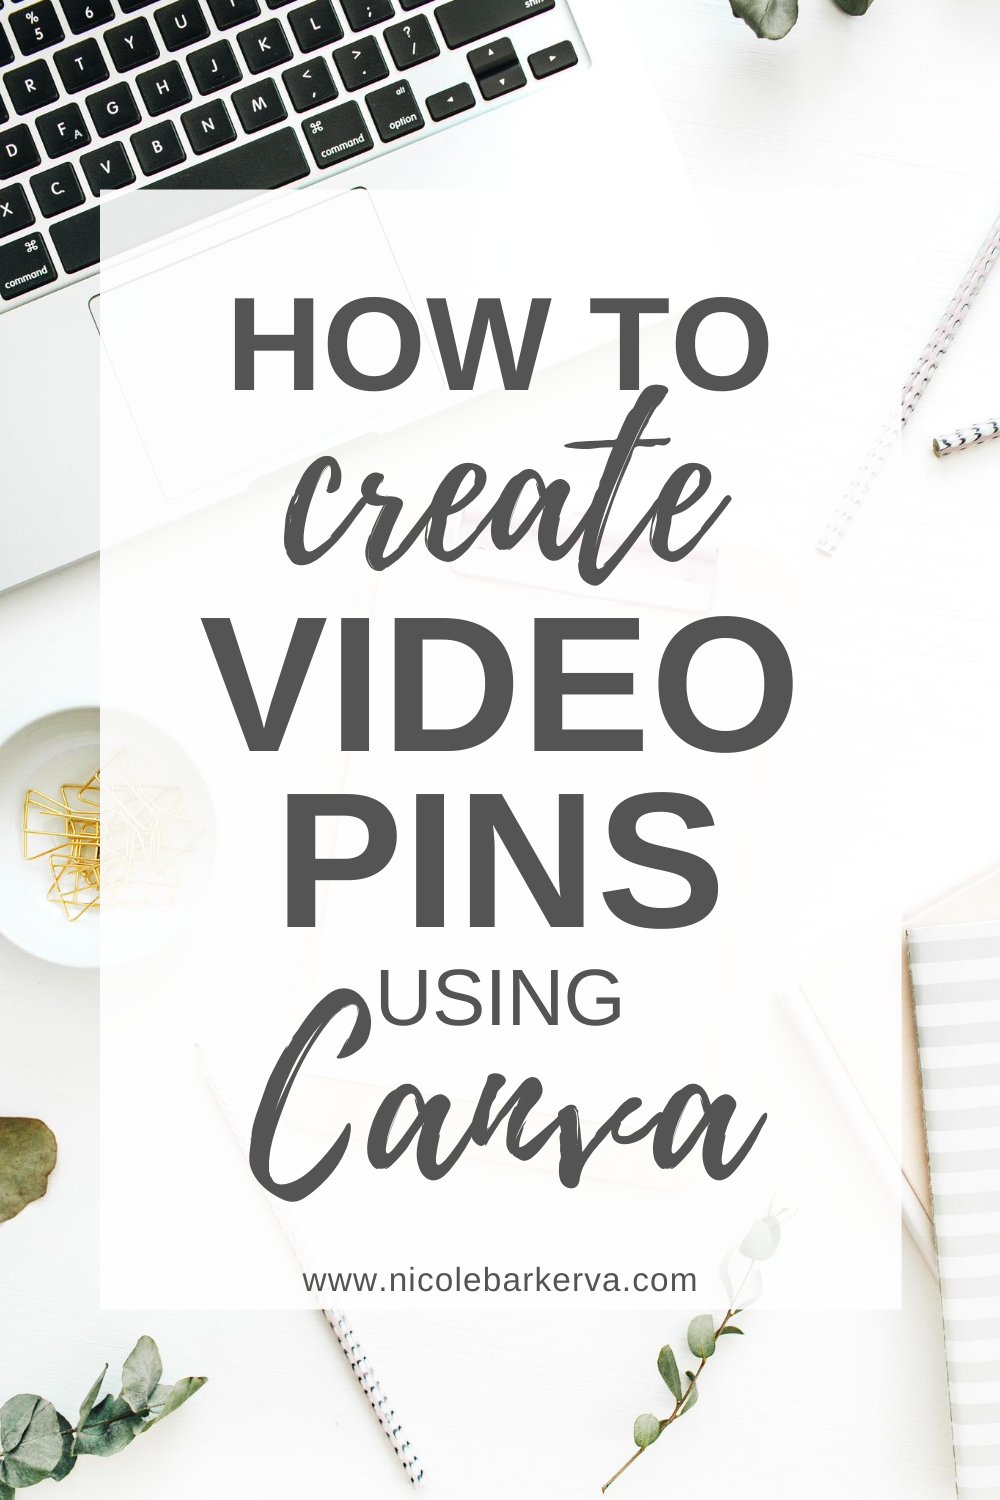 How to Create Video Pins